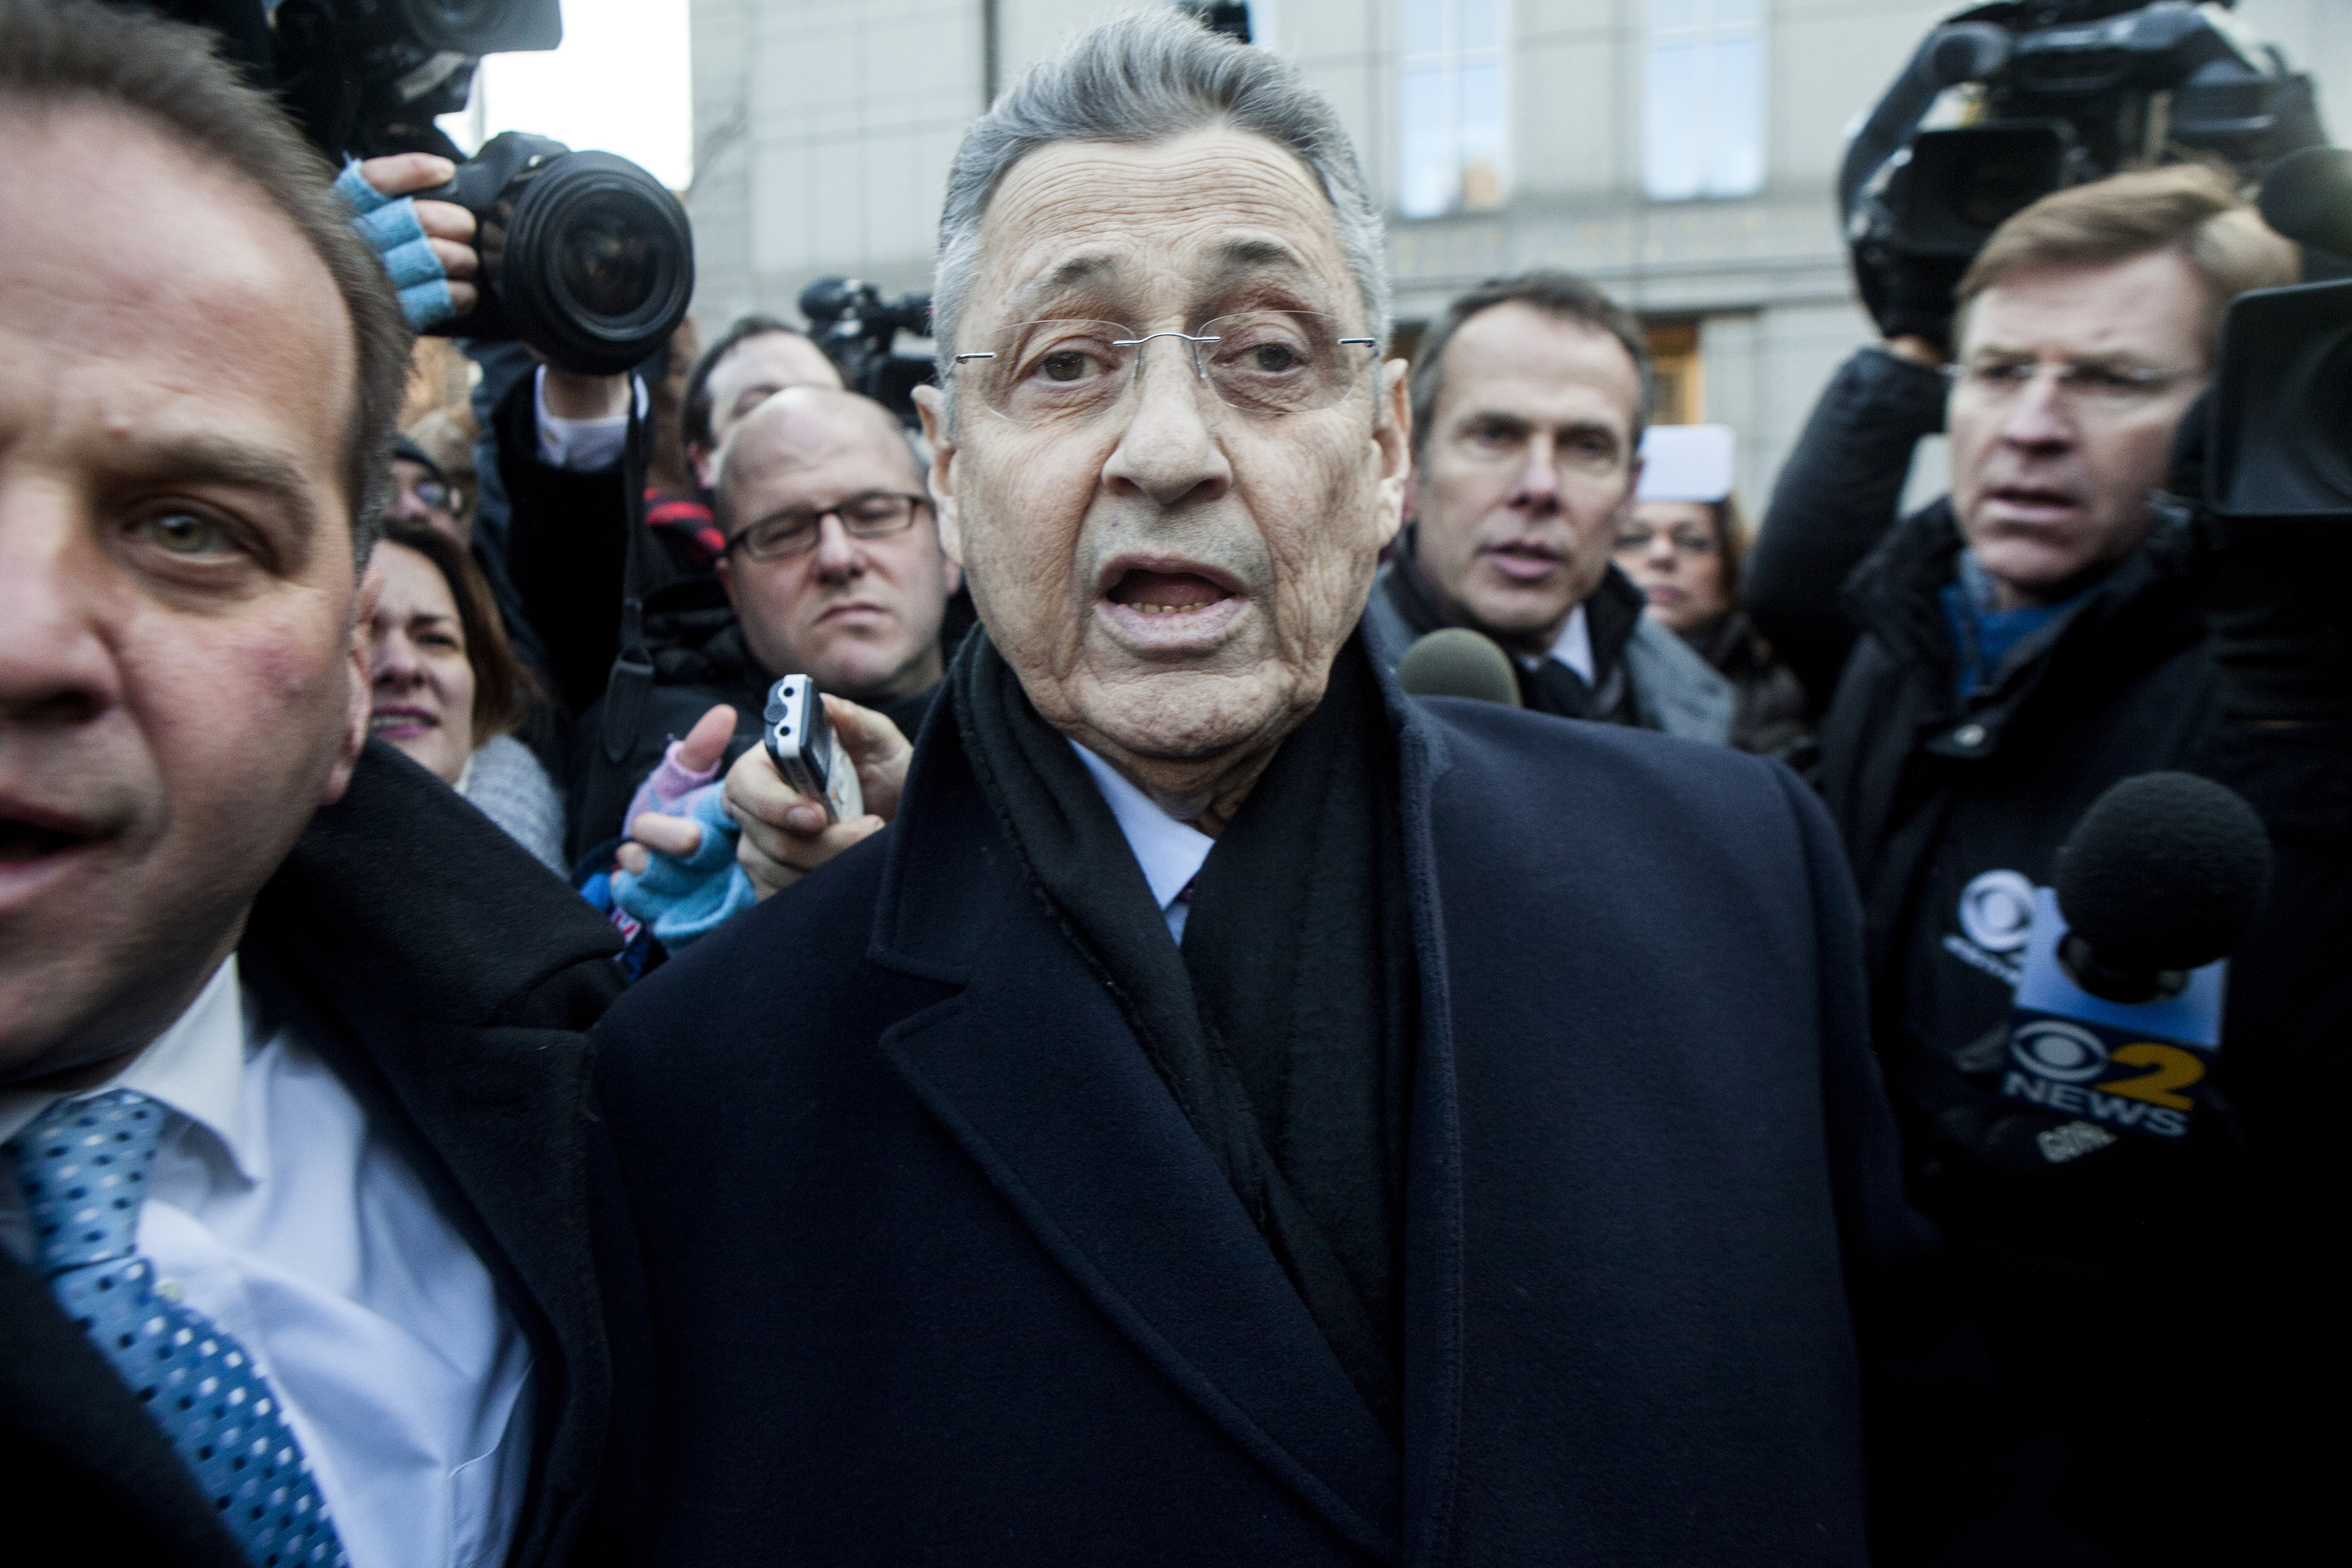 Assembly Speaker Sheldon Silver faces reporters after being arraigned on federal corruption charges Jan. 22, 2015. (New York Times)